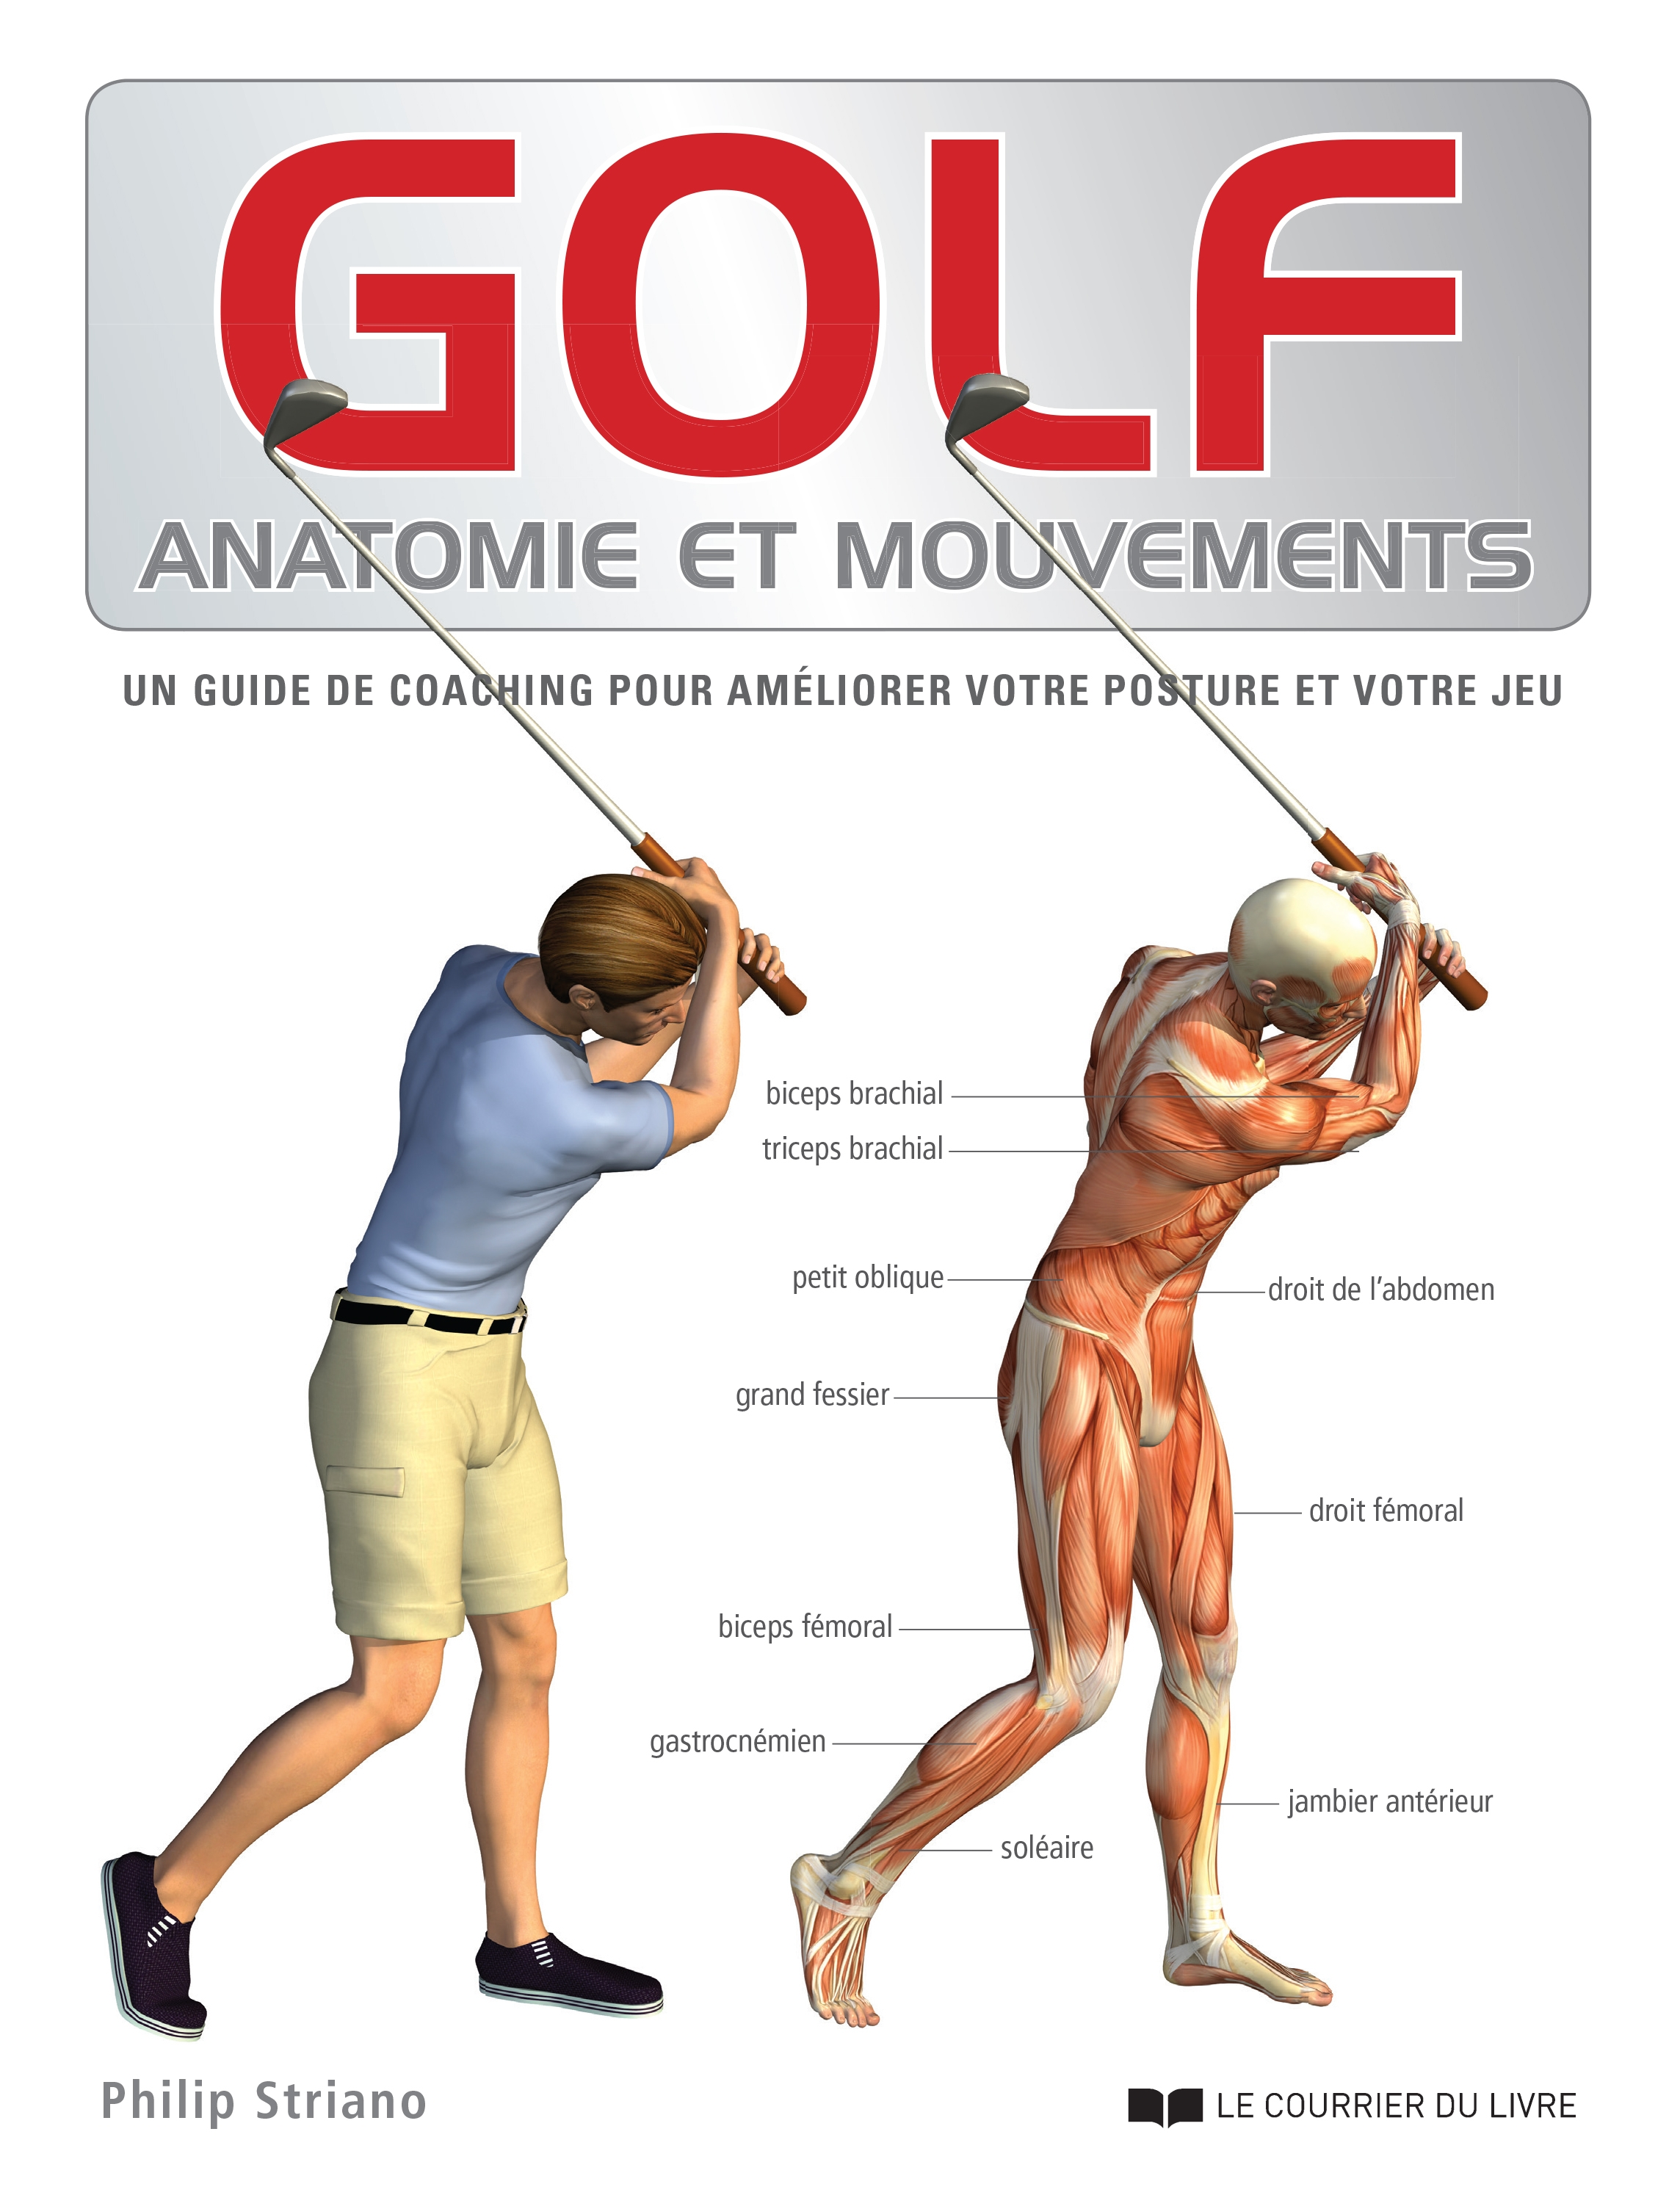 Golf, Anatomie et mouvements - Dr. Philip Striano